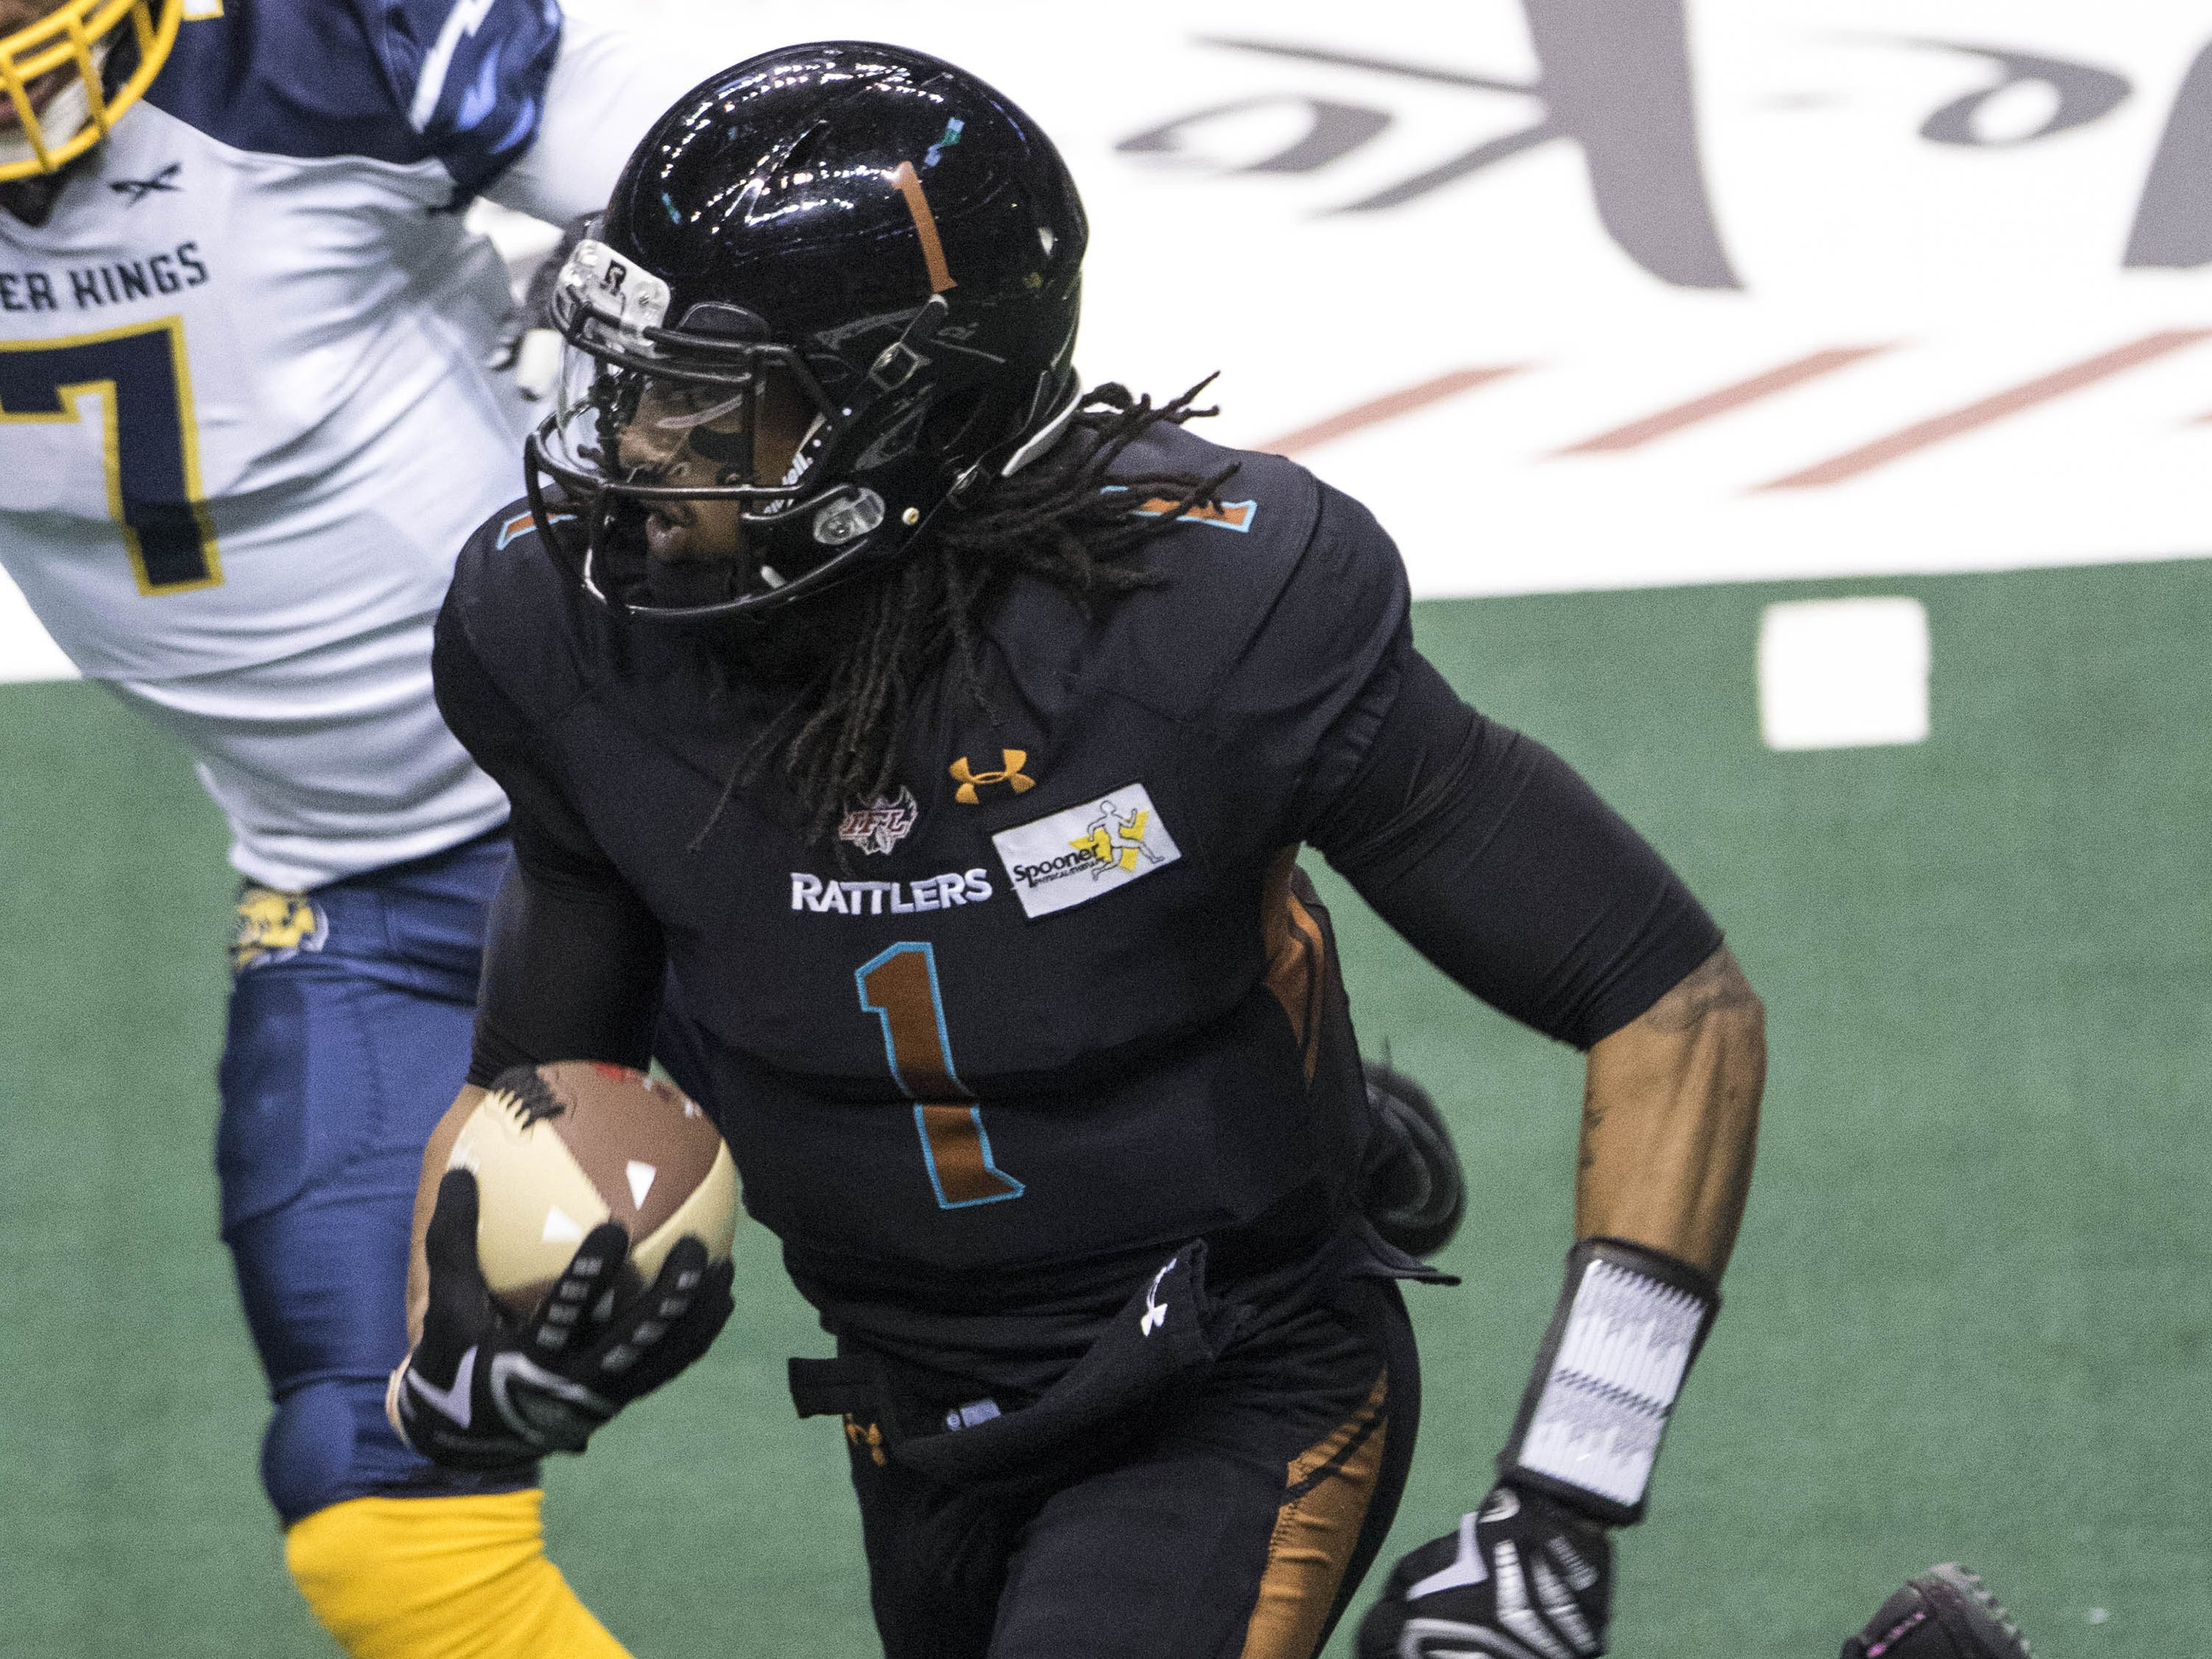 Arizona Rattlers Verlon Reed Jr.(1) runs for a first half touchdown against Cedar Rapids River Kings during their game at Talking Stick Resort Arena in Phoenix, Sunday, March 3, 2019.